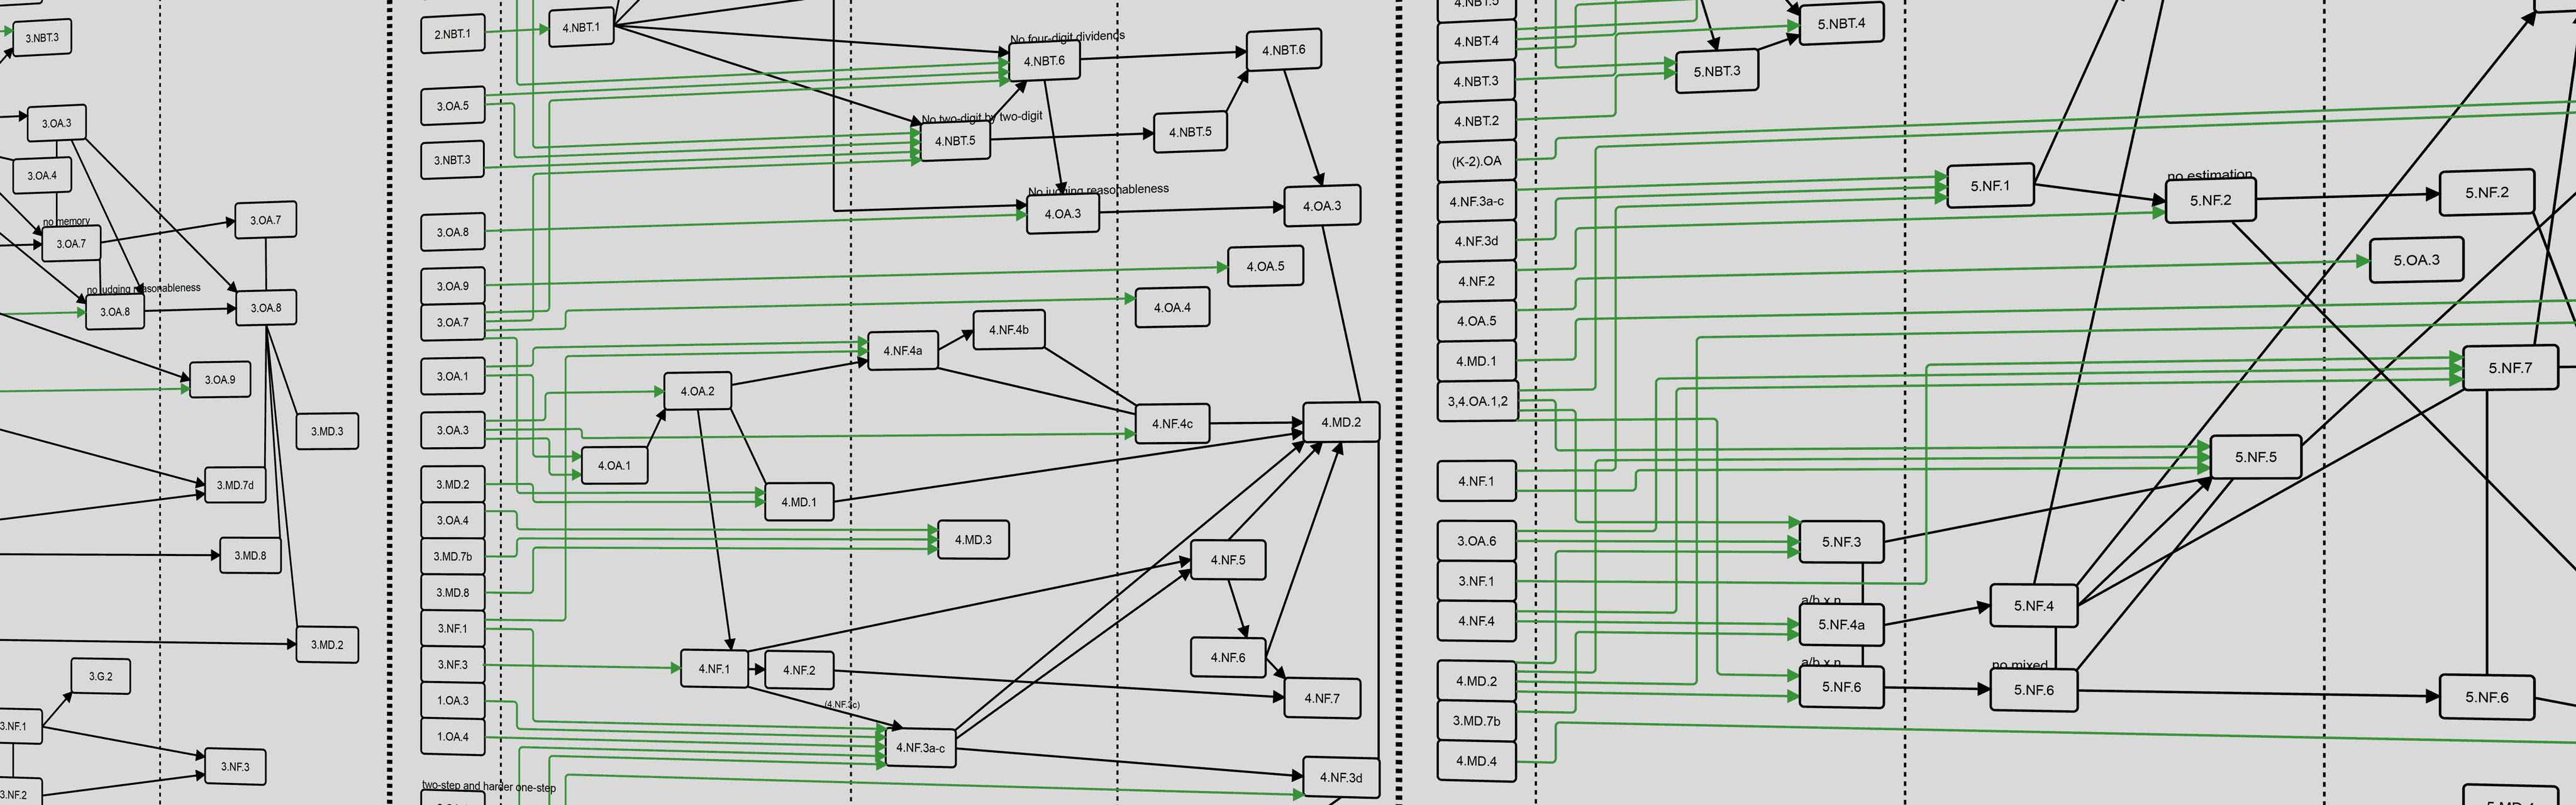 The Coherence Map Shows The Connections Between Common